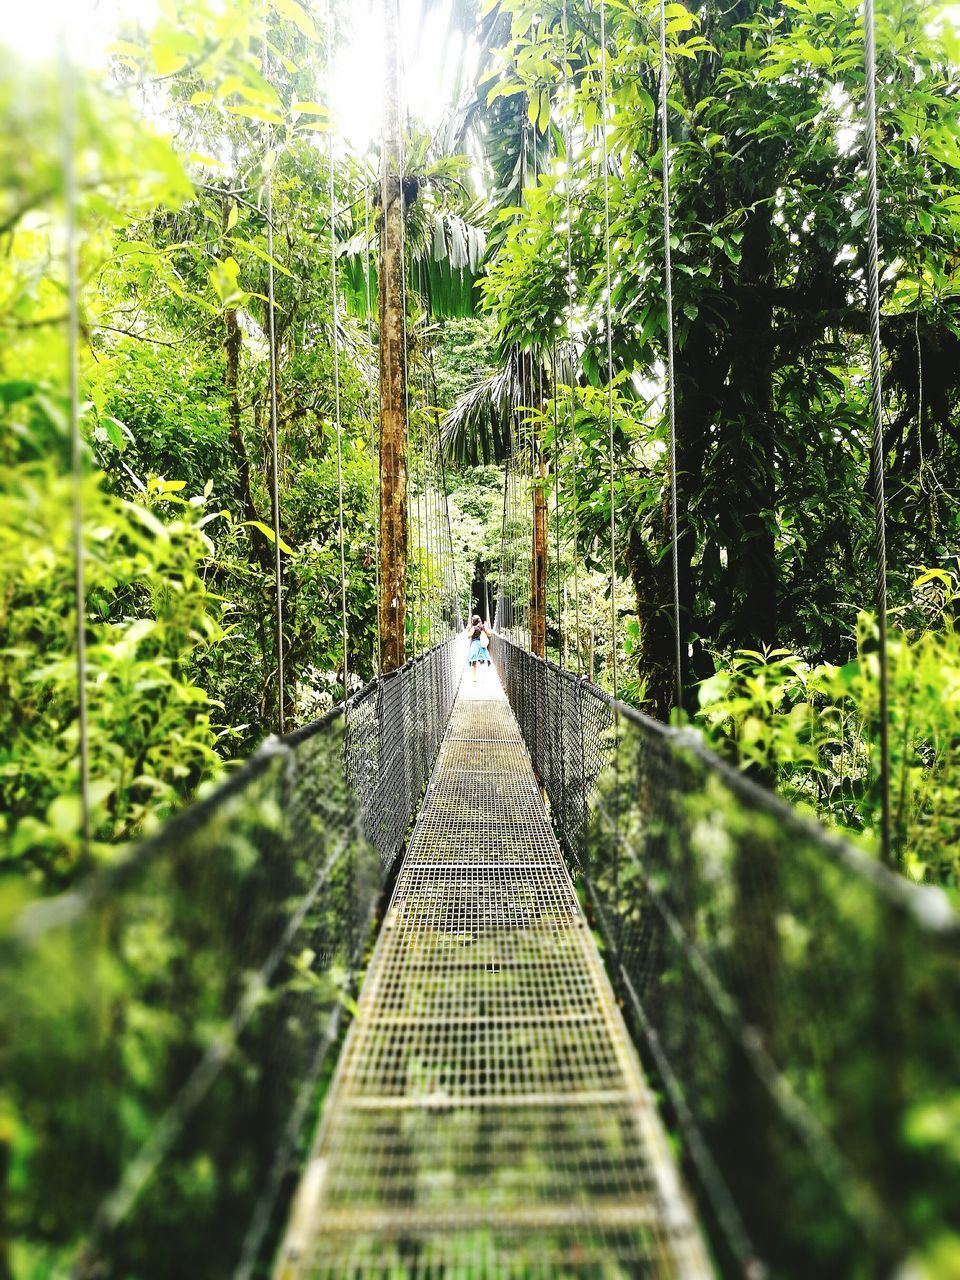 the way forward, tree, green color, day, footbridge, outdoors, growth, built structure, nature, architecture, no people, beauty in nature